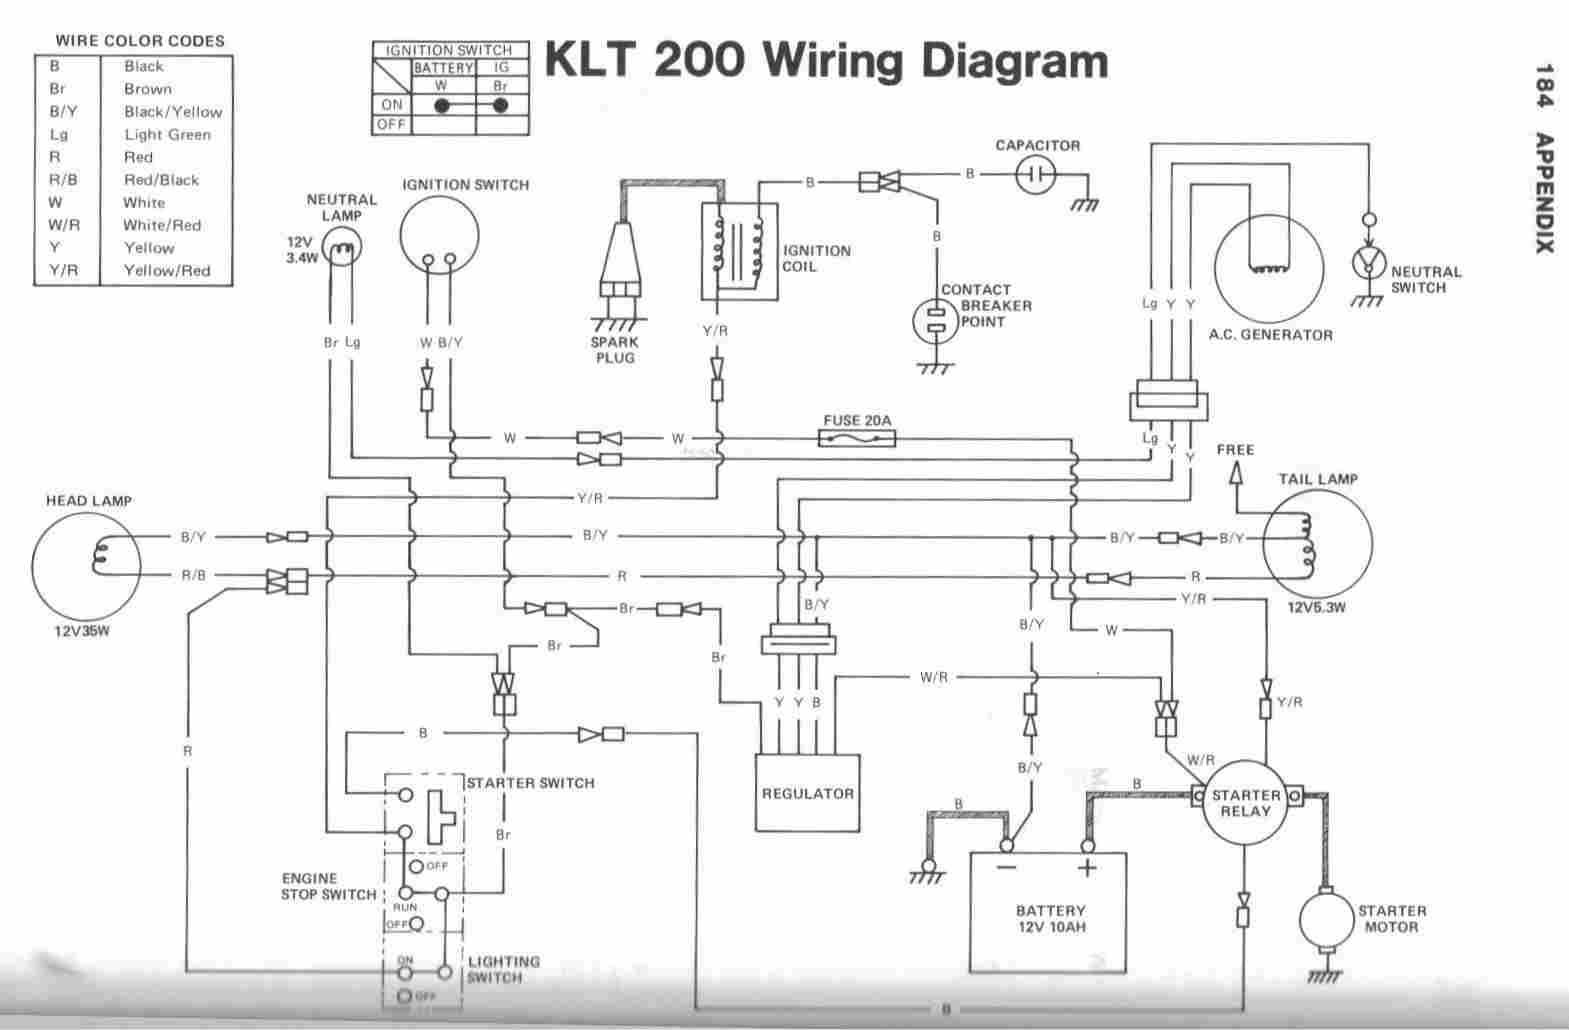 Kawasaki Mule 1000 Electrical Schematic Manual Of Wiring Diagram Residential Diagrams Pdf Easy Routing